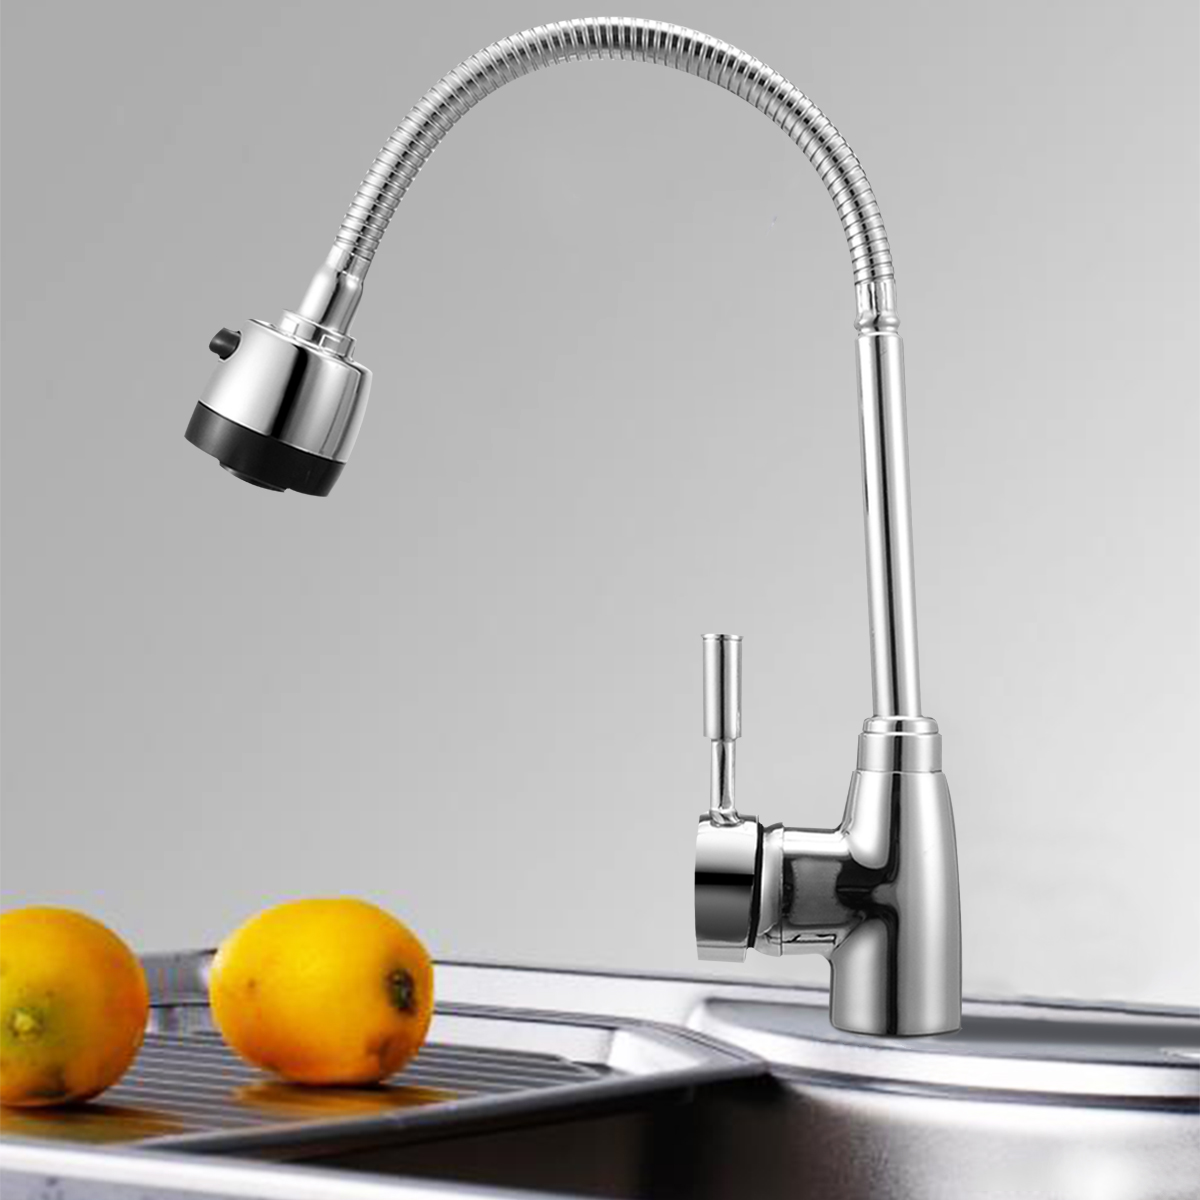 1pcs Zinc Alloy 360 Degree Rotatable Spout Kitchen Hot Cold Mixer Sitting Tap Handheld Wash Basin Faucet For Deck Mounted